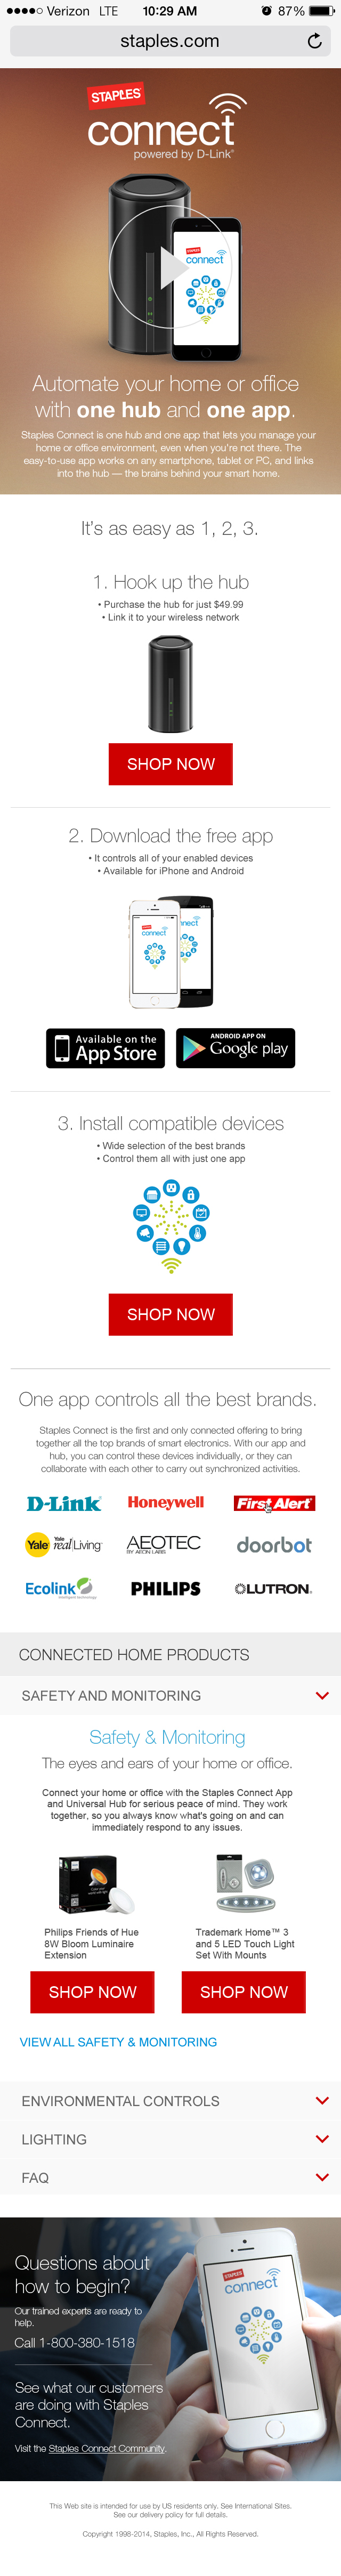 Staples Connect - Mobile